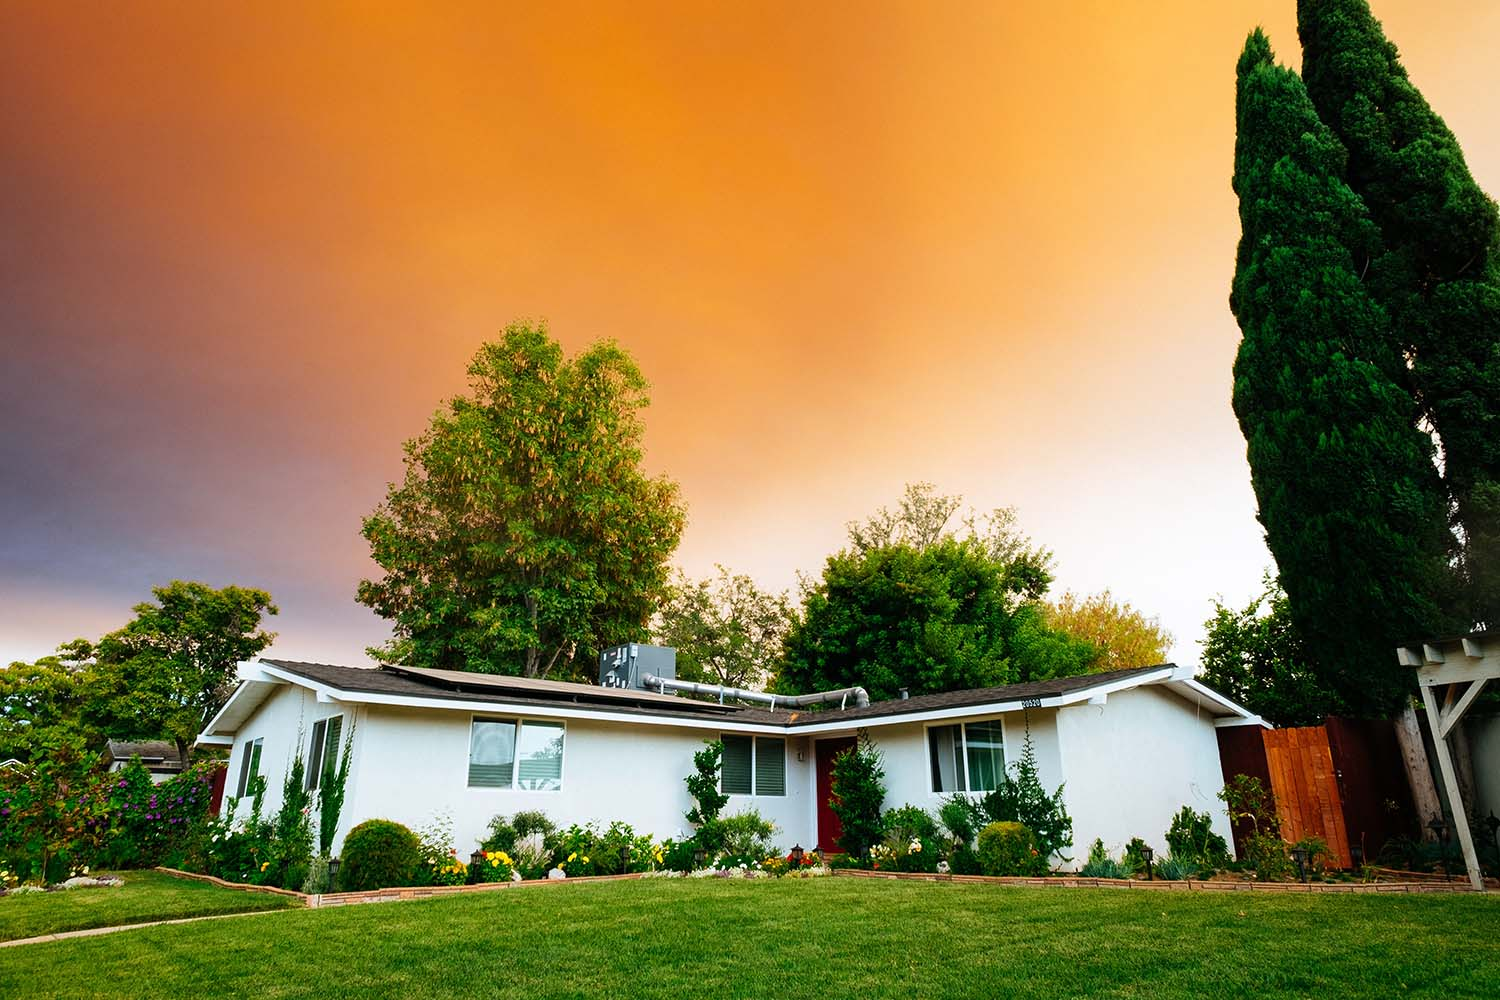 Tips to Help Sell Your Home in 2021